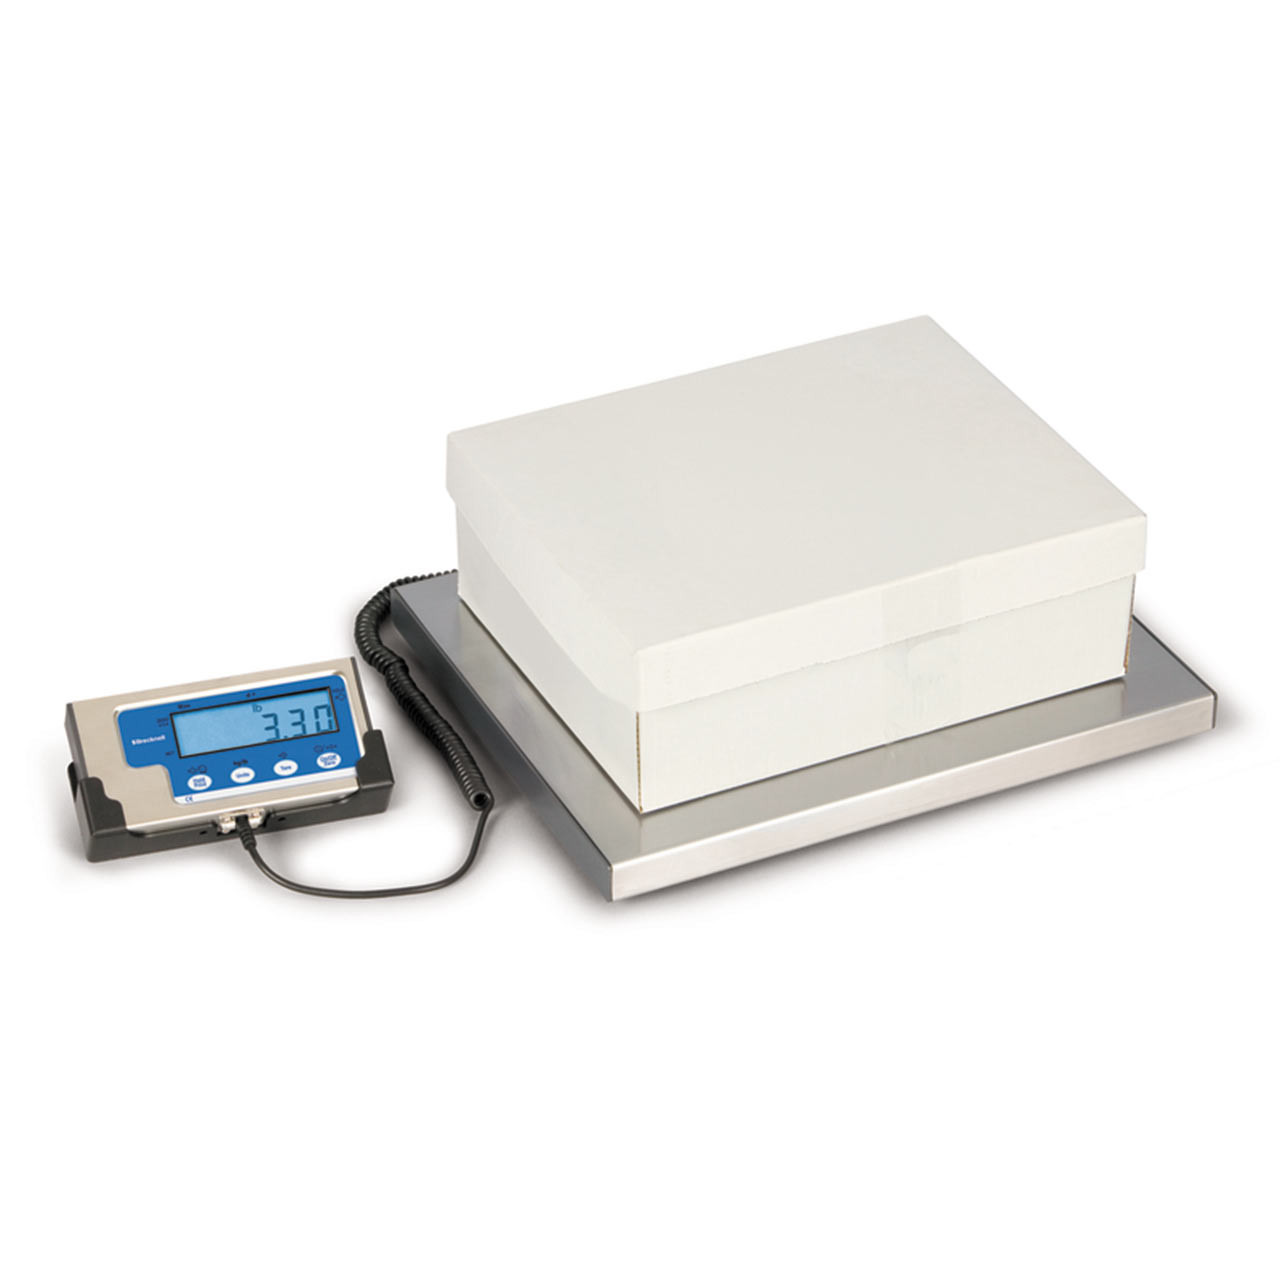 Stainless Steel Platform Bench Scale Weighing Box